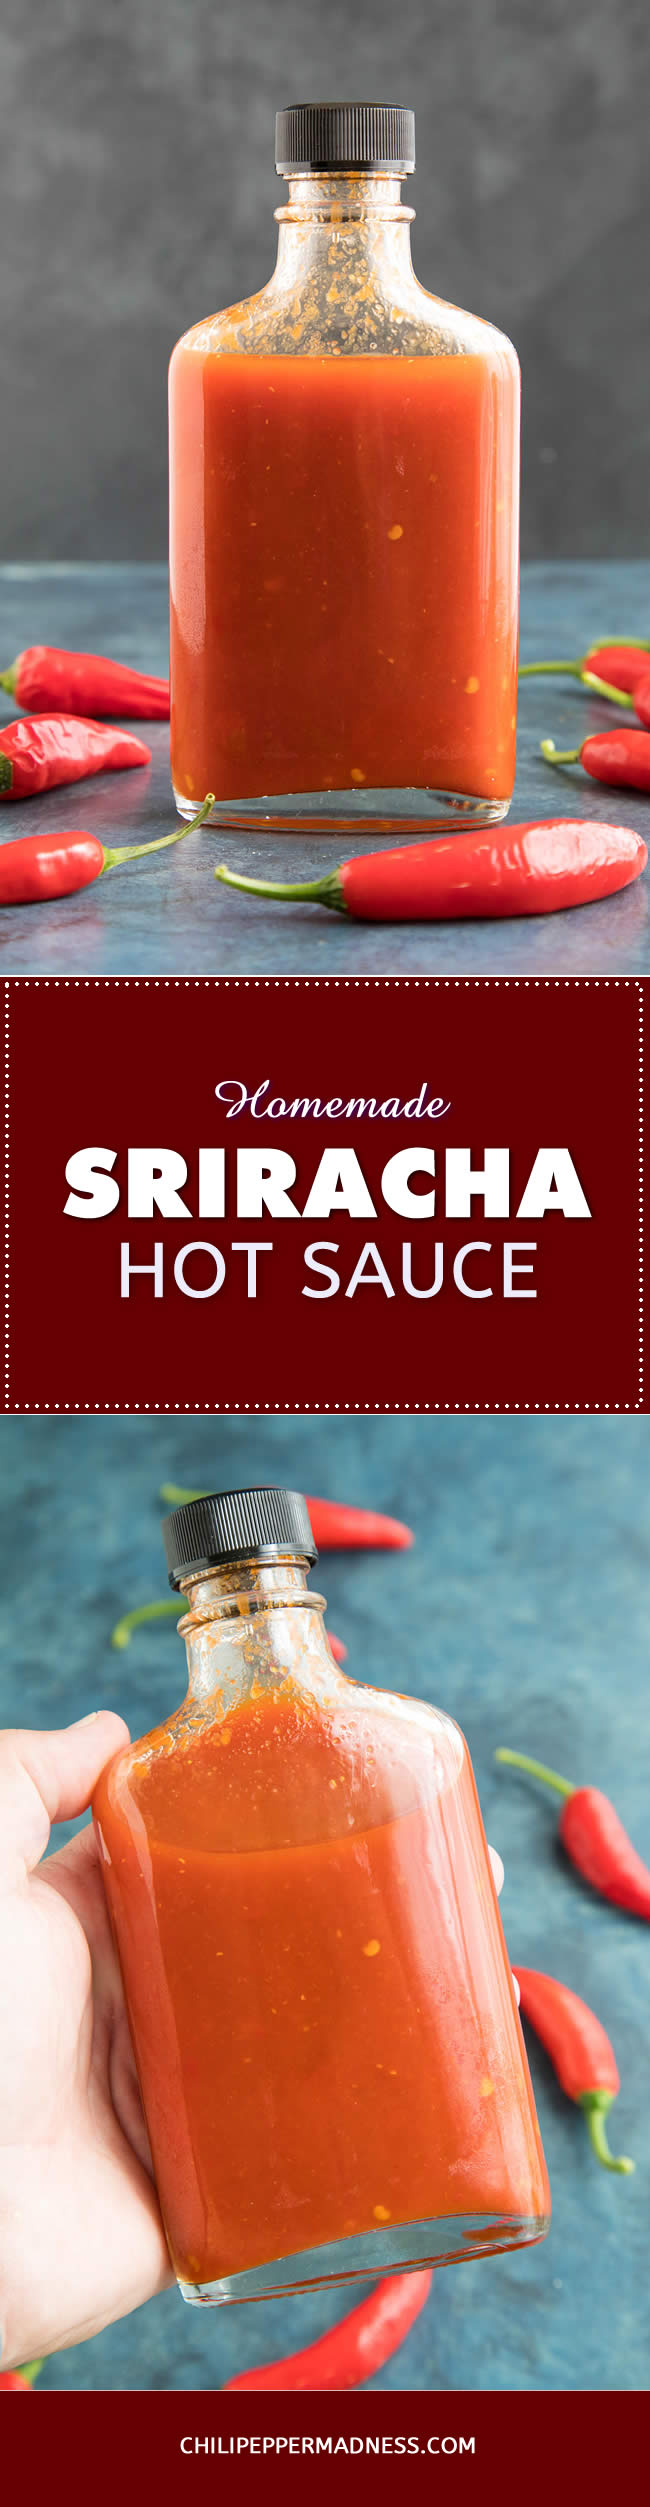 Homemade Sriracha Hot Sauce - Recipe